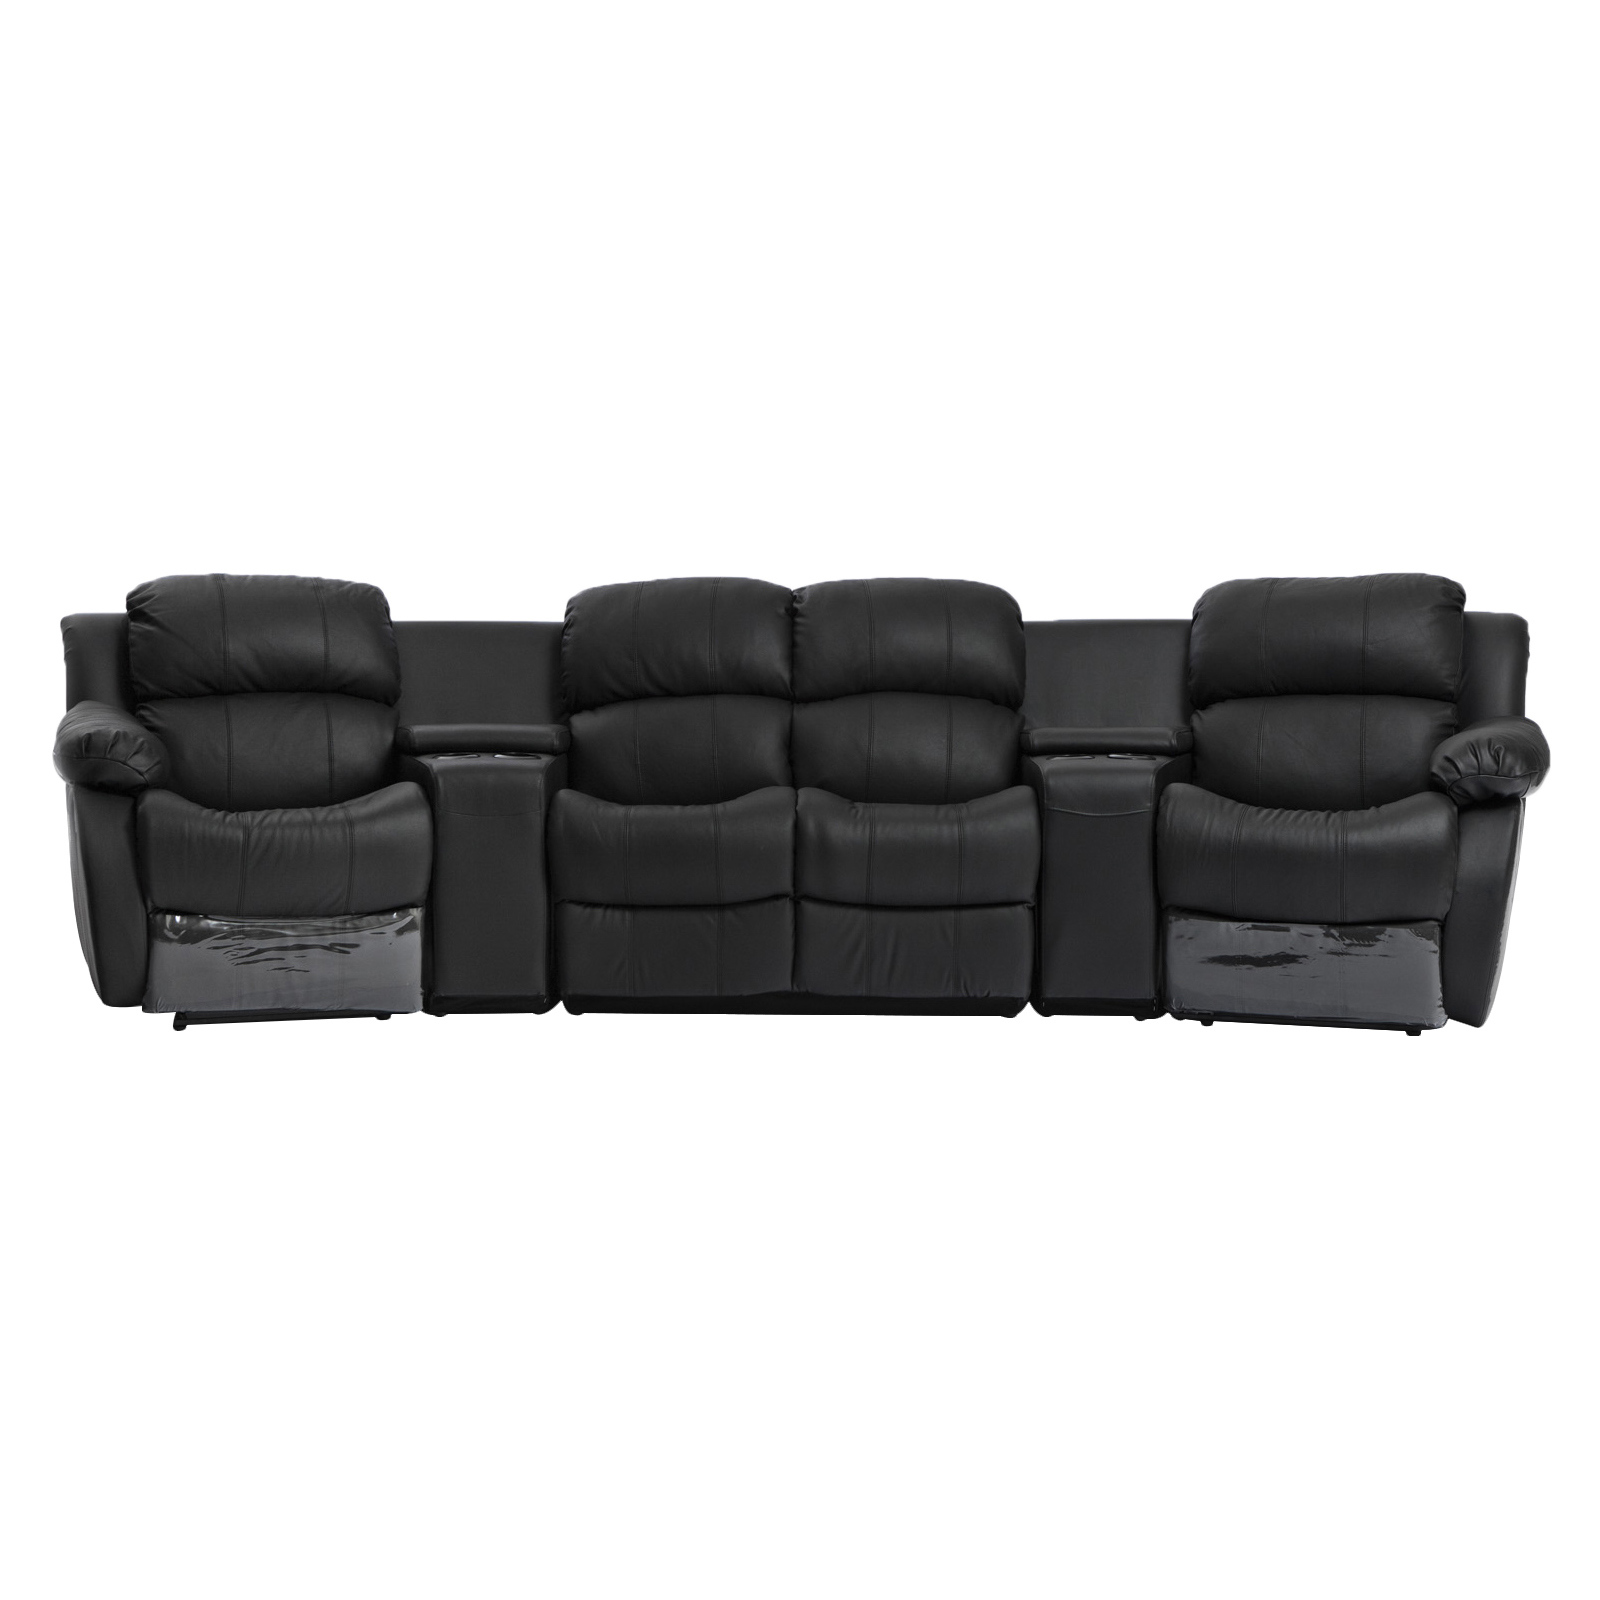 nikki leather 4 seater home theatre recliner sofa lounge suite with 2 reclines ebay. Black Bedroom Furniture Sets. Home Design Ideas